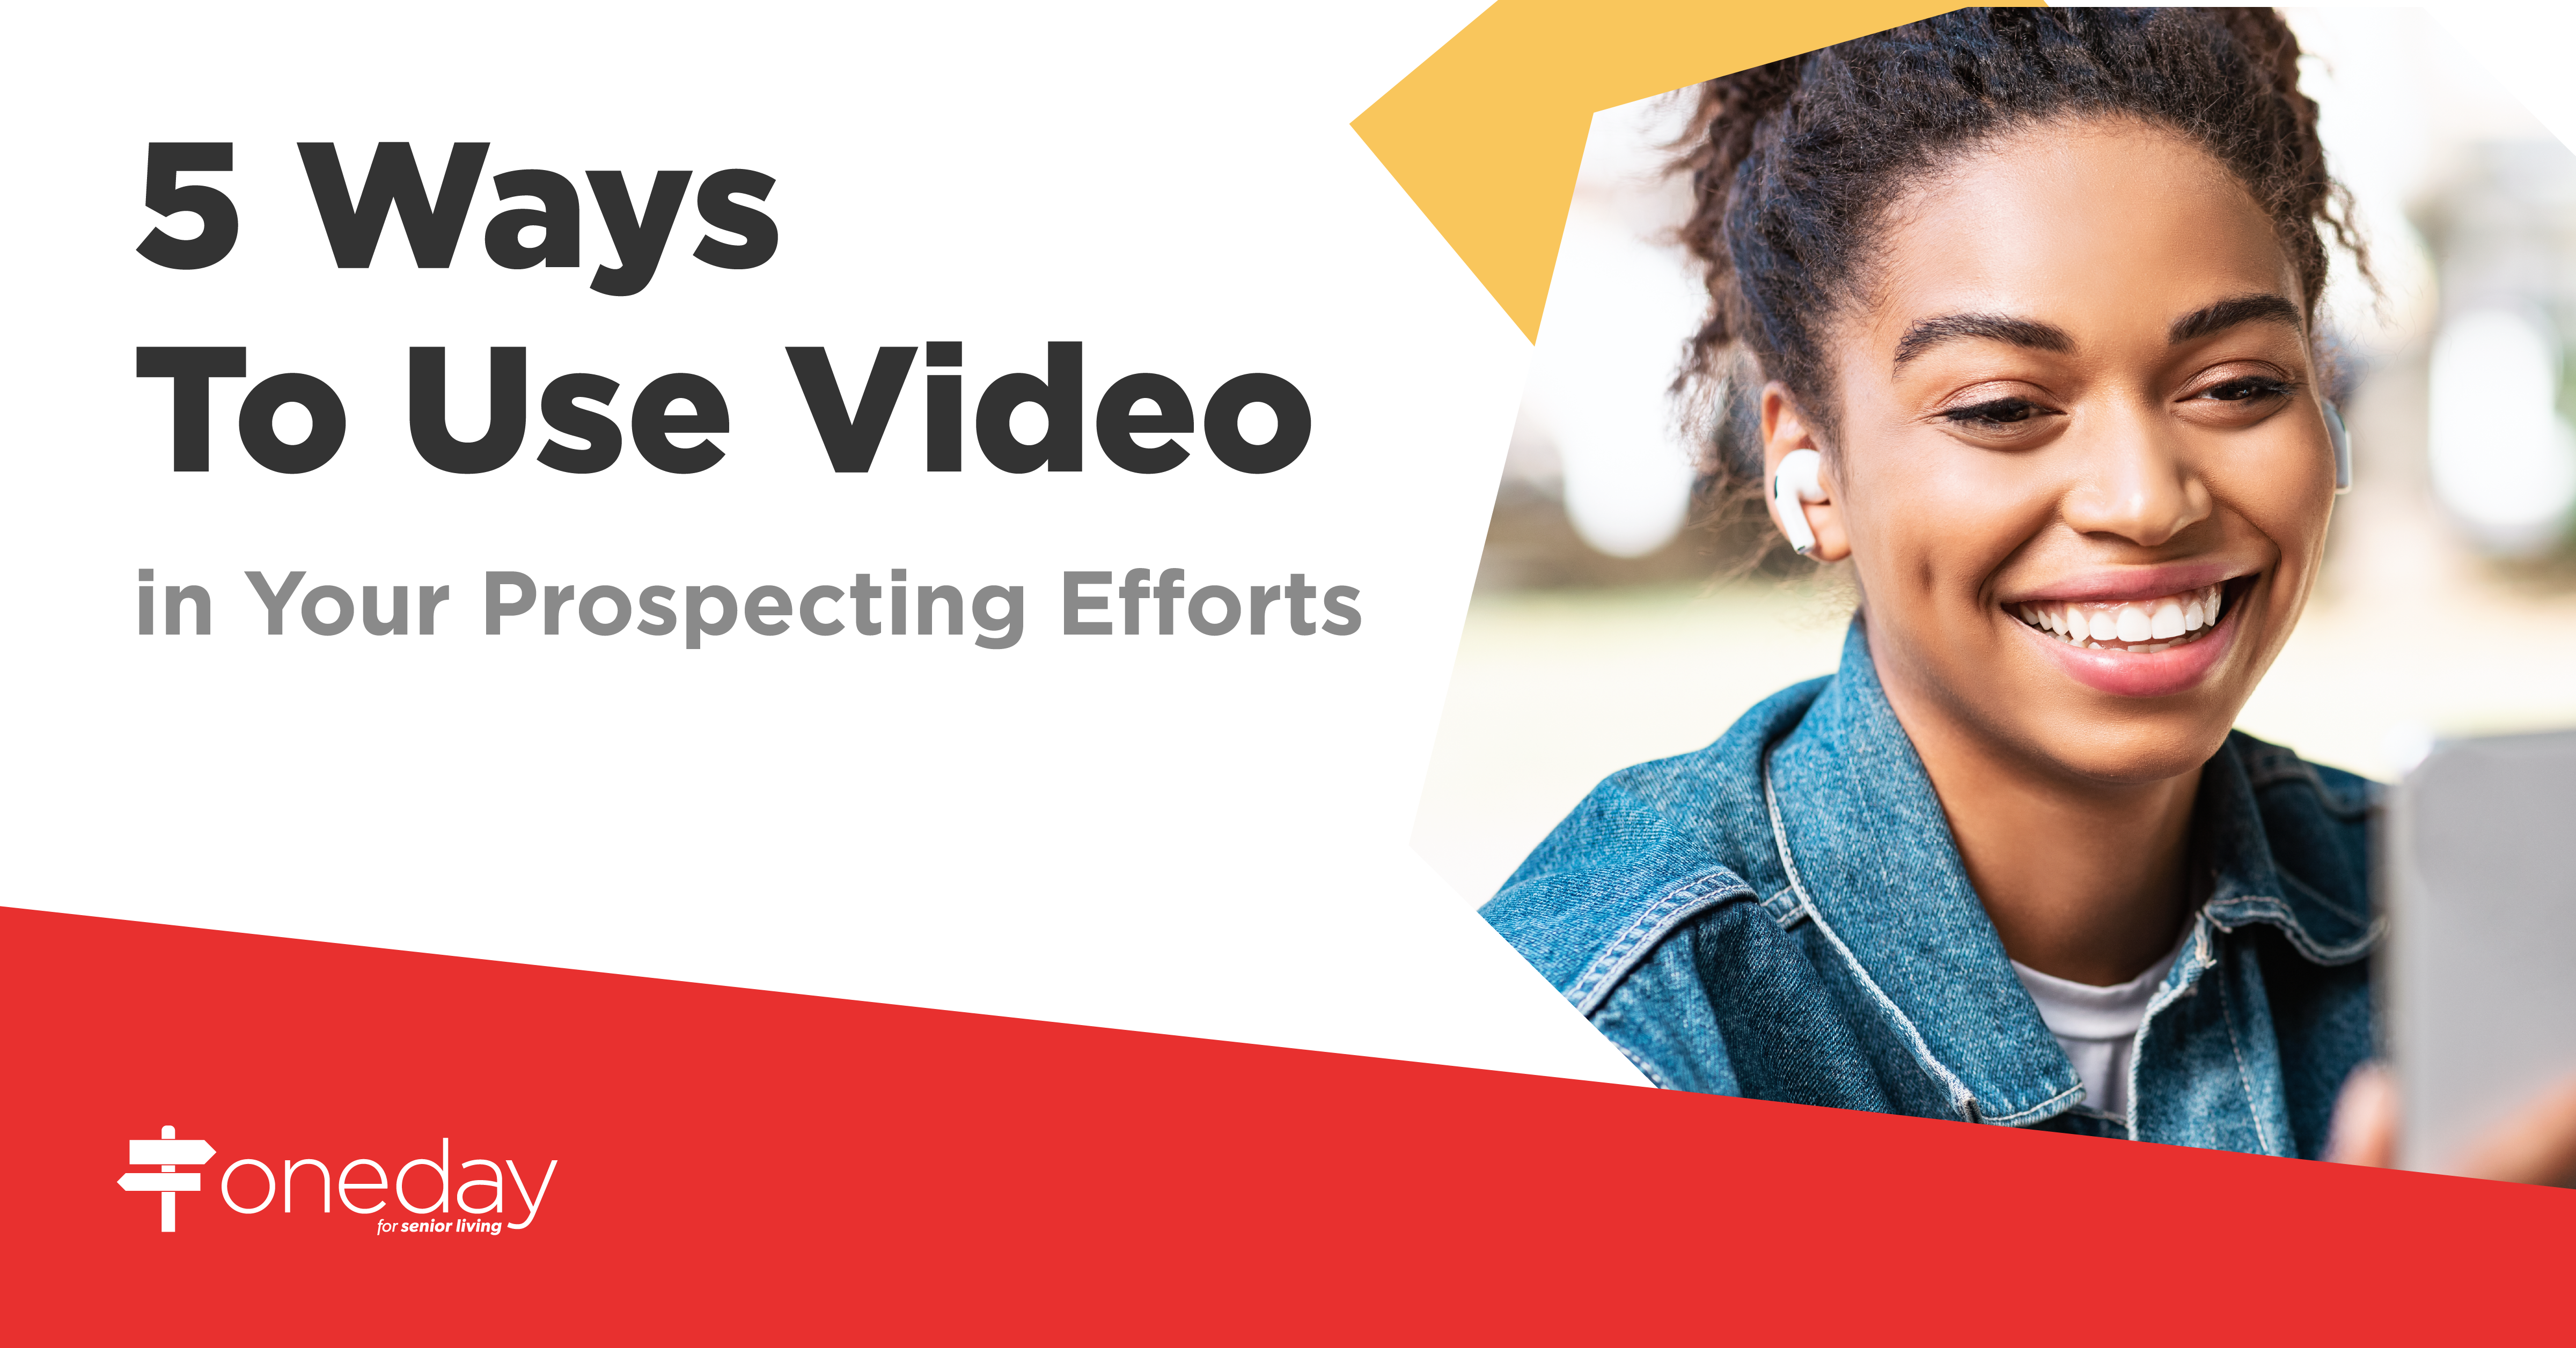 Simple ways your senior living community's sales and marketing team can use video to energize your prospecting efforts and start driving more move-ins.